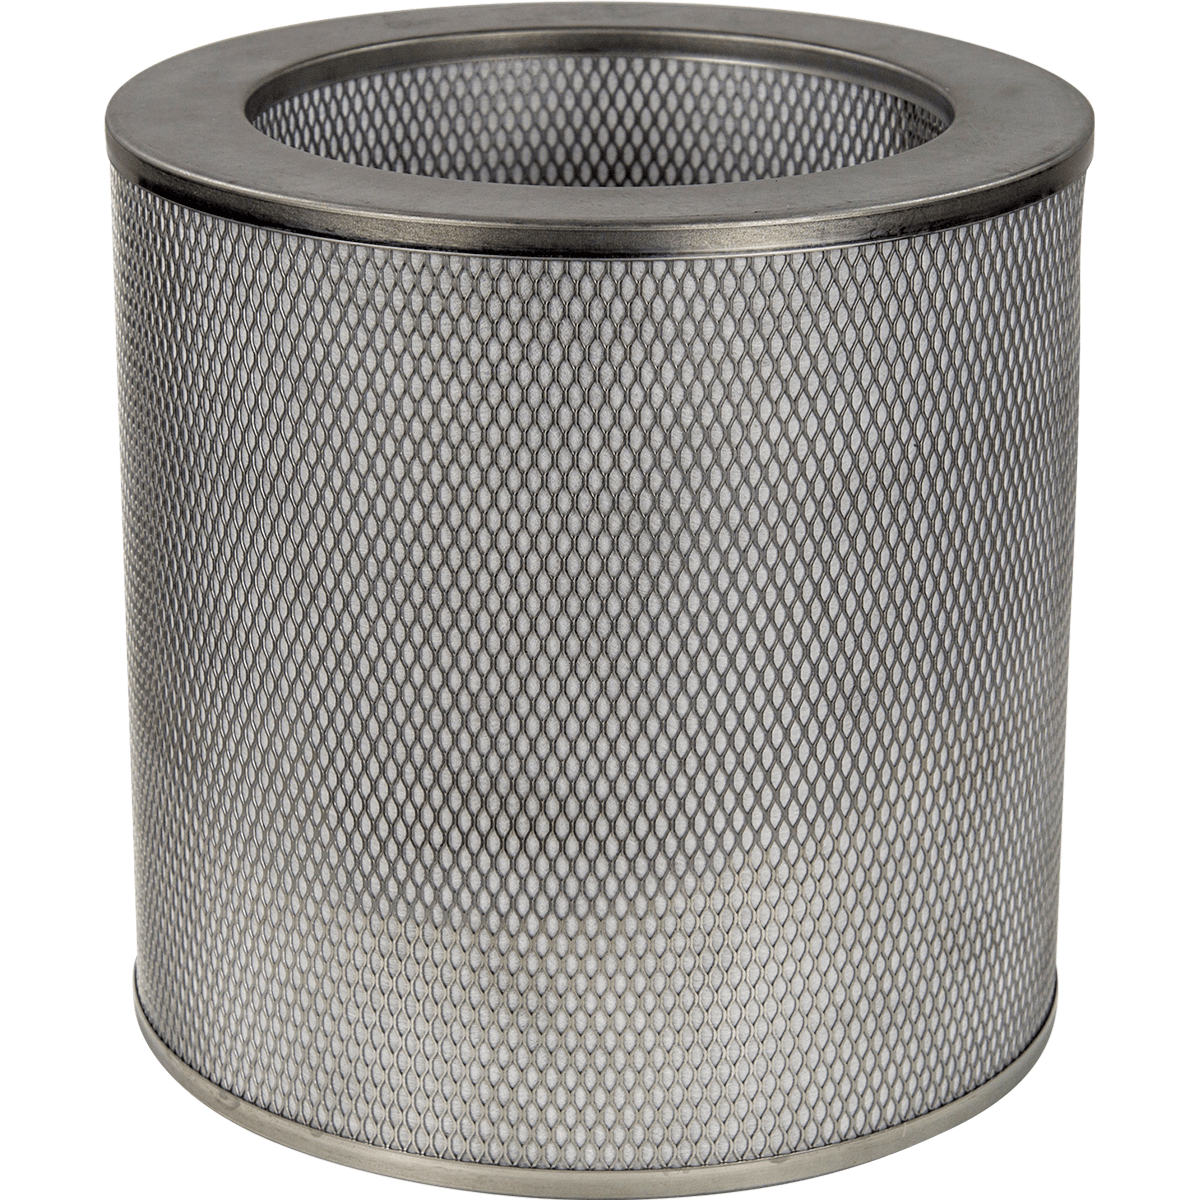 Image of Airpura Replacement 3 Inch Superblend Carbon Filter